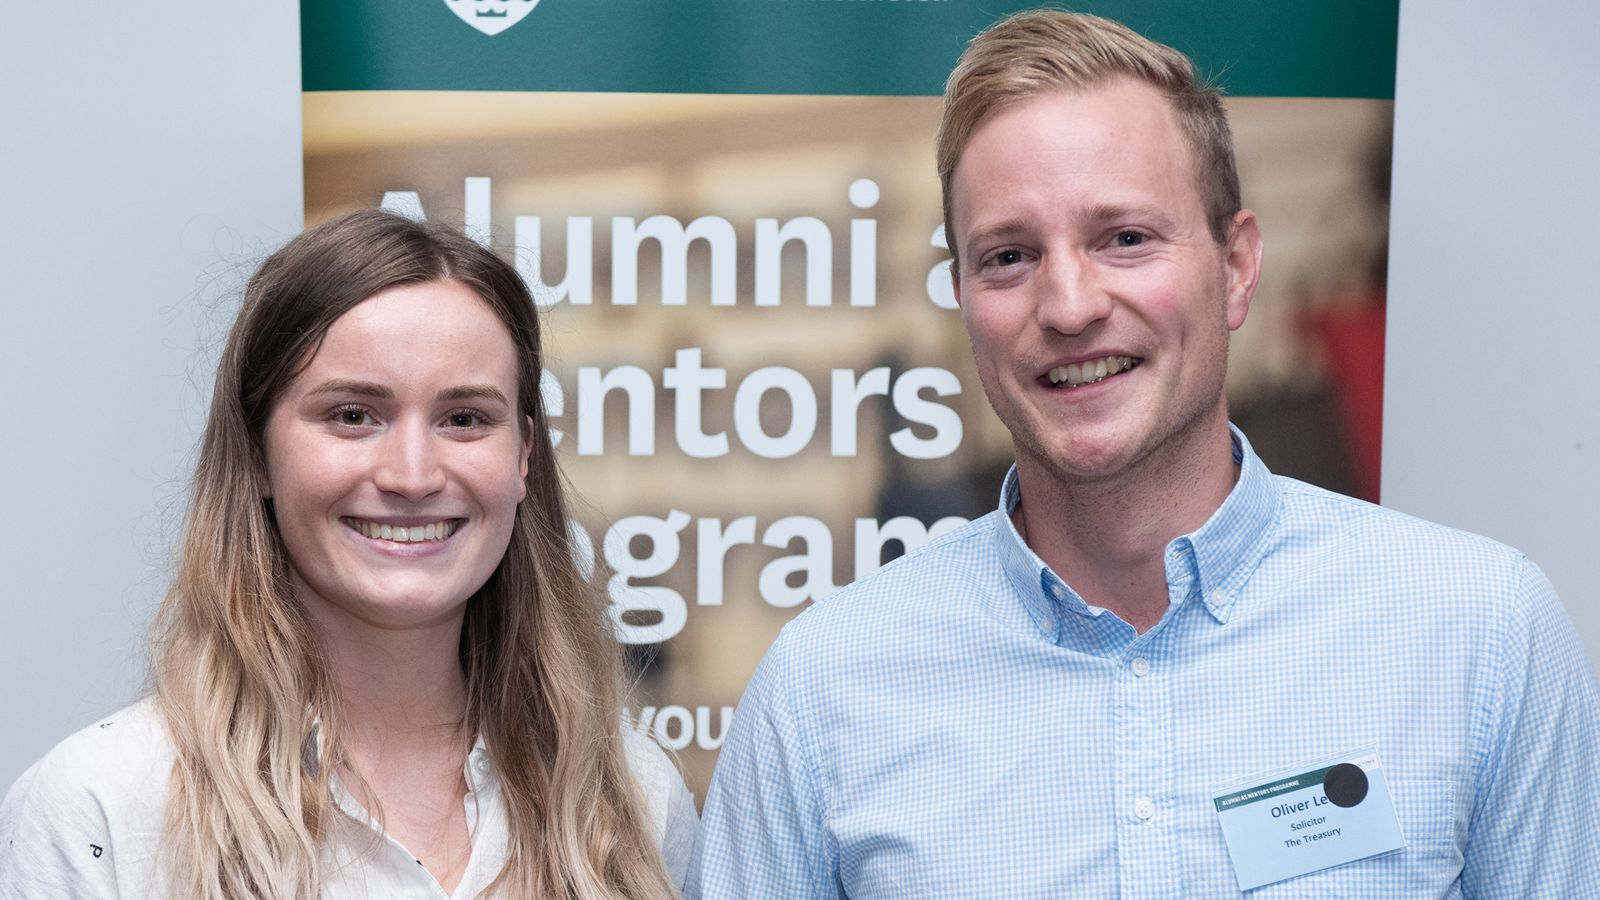 Richard London and Cara Askew working together as part of the Alumni as Mentors programme